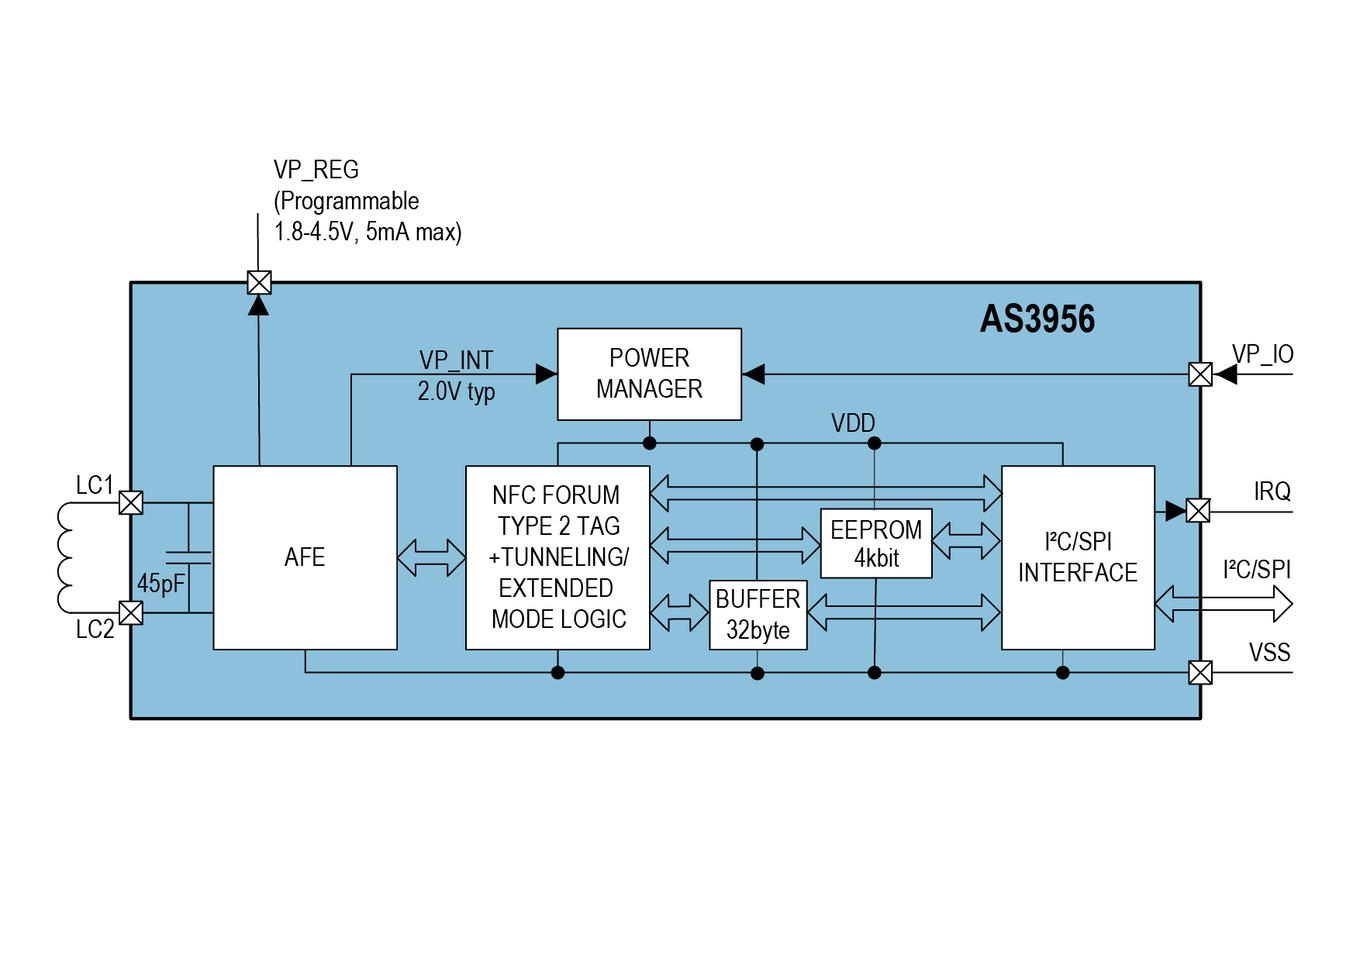 Ams As3956 Nfc To Spi Ic Interface Tag External Schematic This Is The Of Connections Able Operate Fully Powered By Rf Field Without Any Supply Combined With An Advanced Energy Harvesting Feature